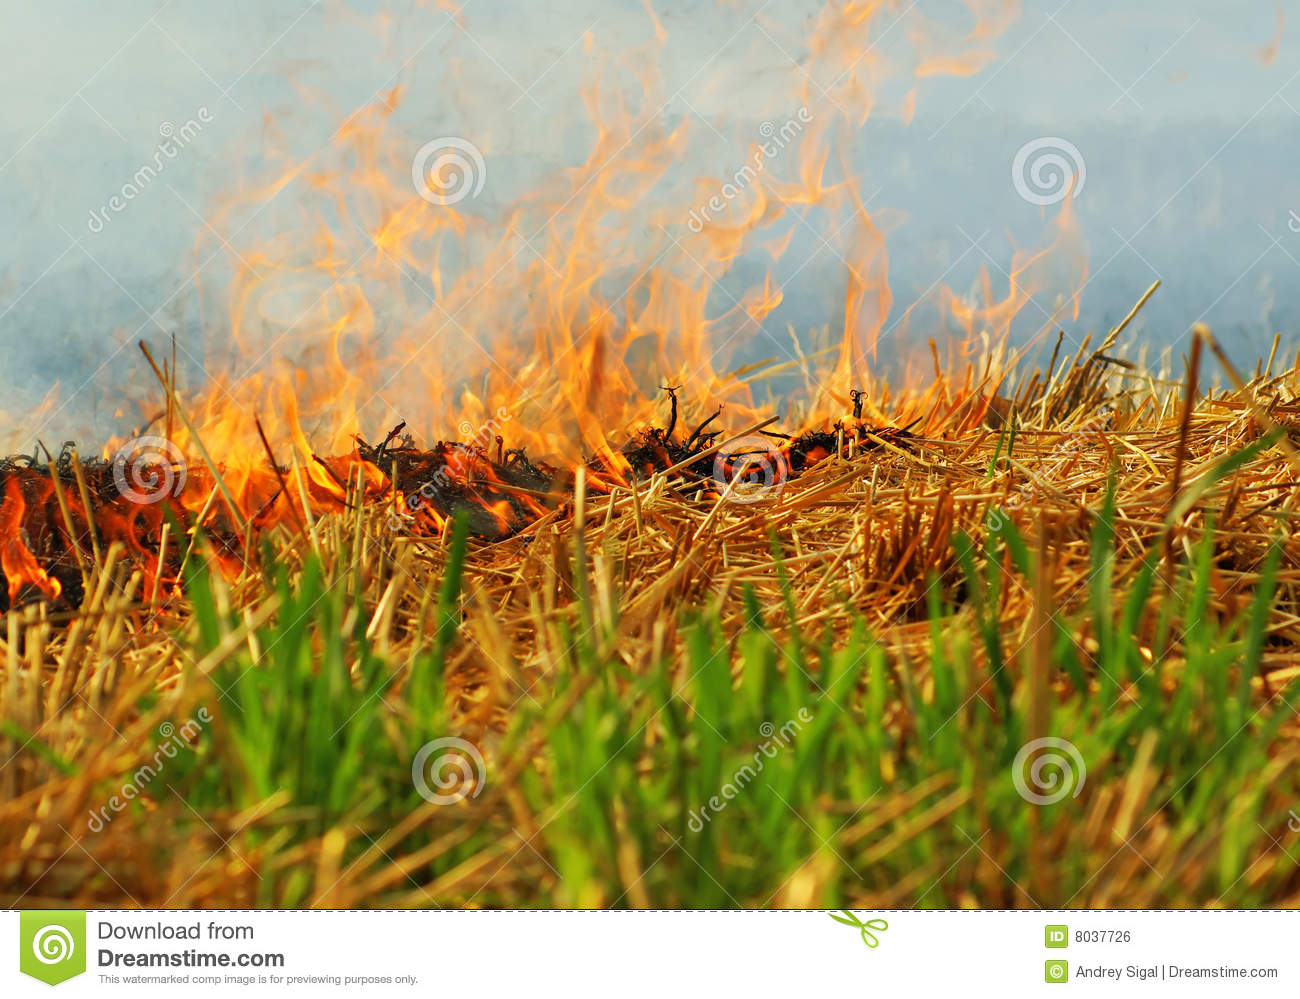 Crop Burning In The Rice Fields Of Southern China Stock Photos.